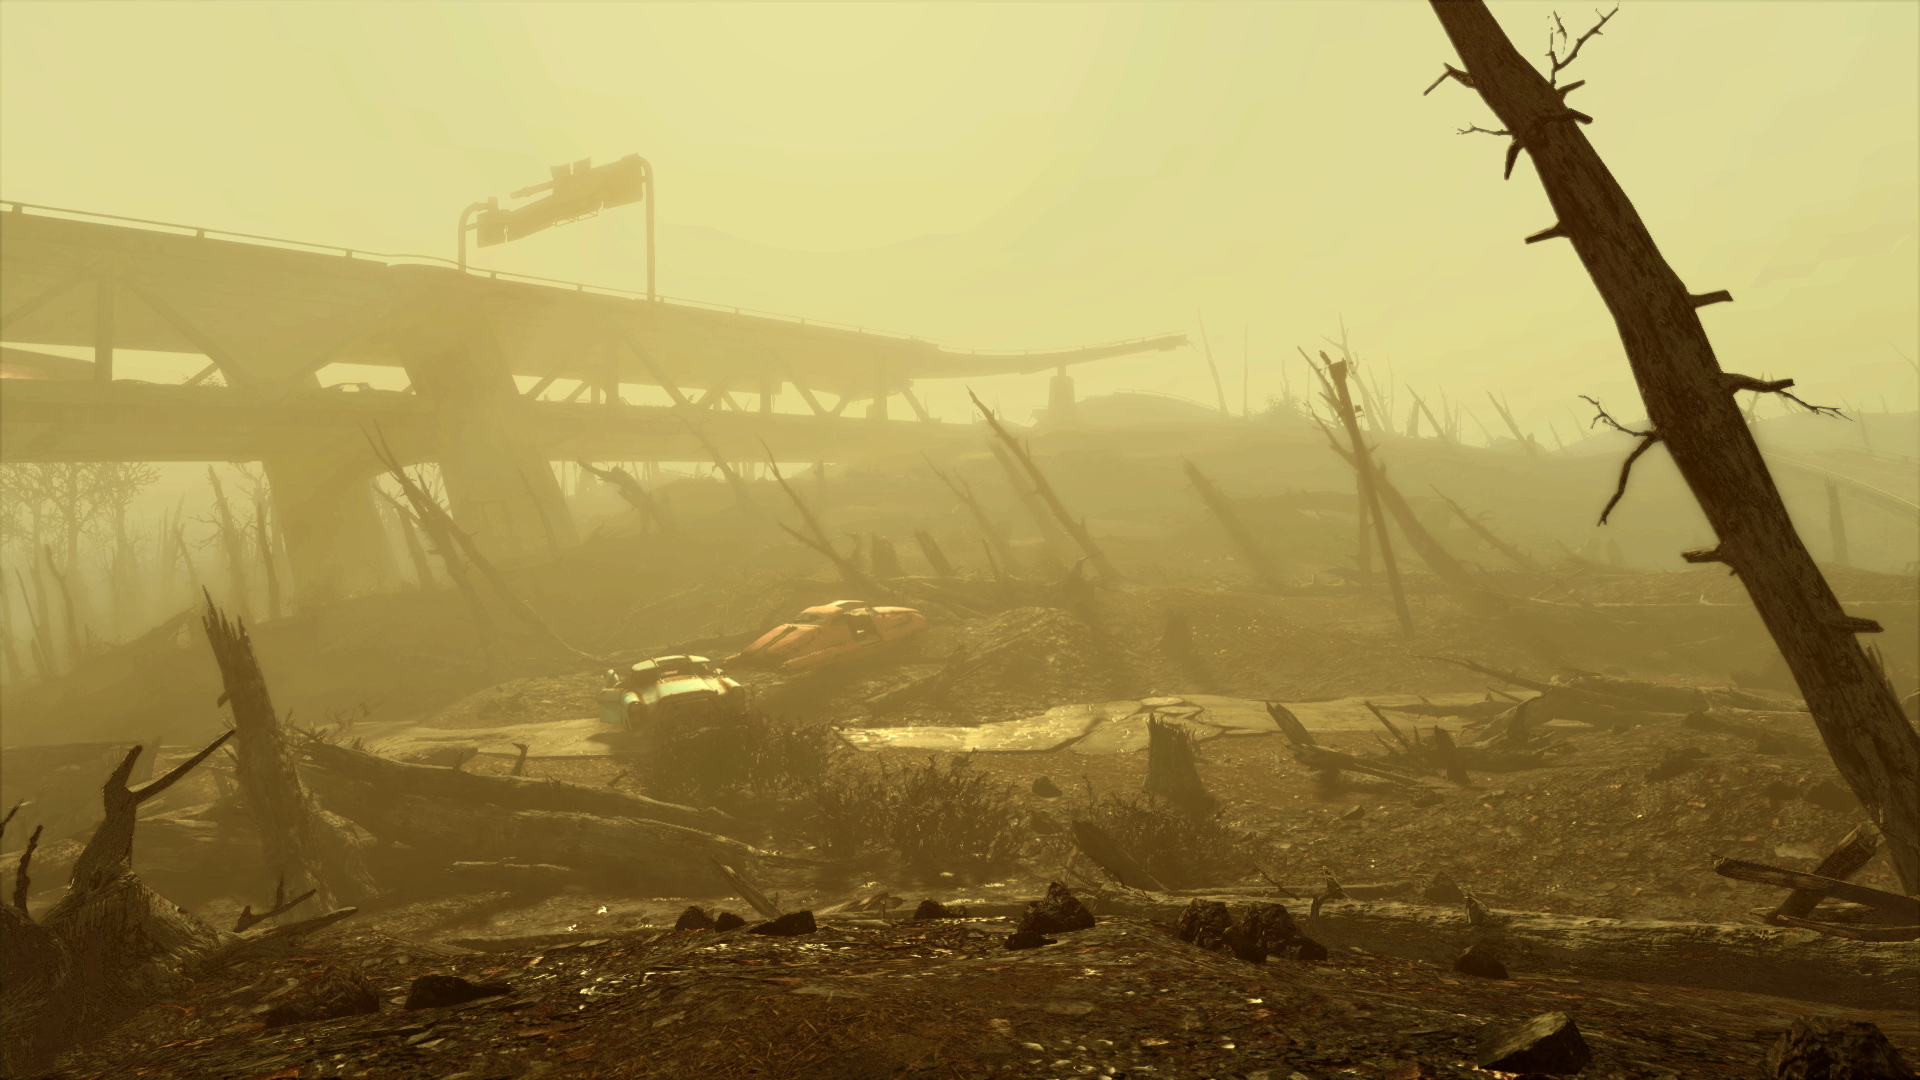 https://vignette4.wikia.nocookie.net/fallout/images/0/0a/Fallout4_E3_Wasteland.png/revision/latest?cb=20150615125853